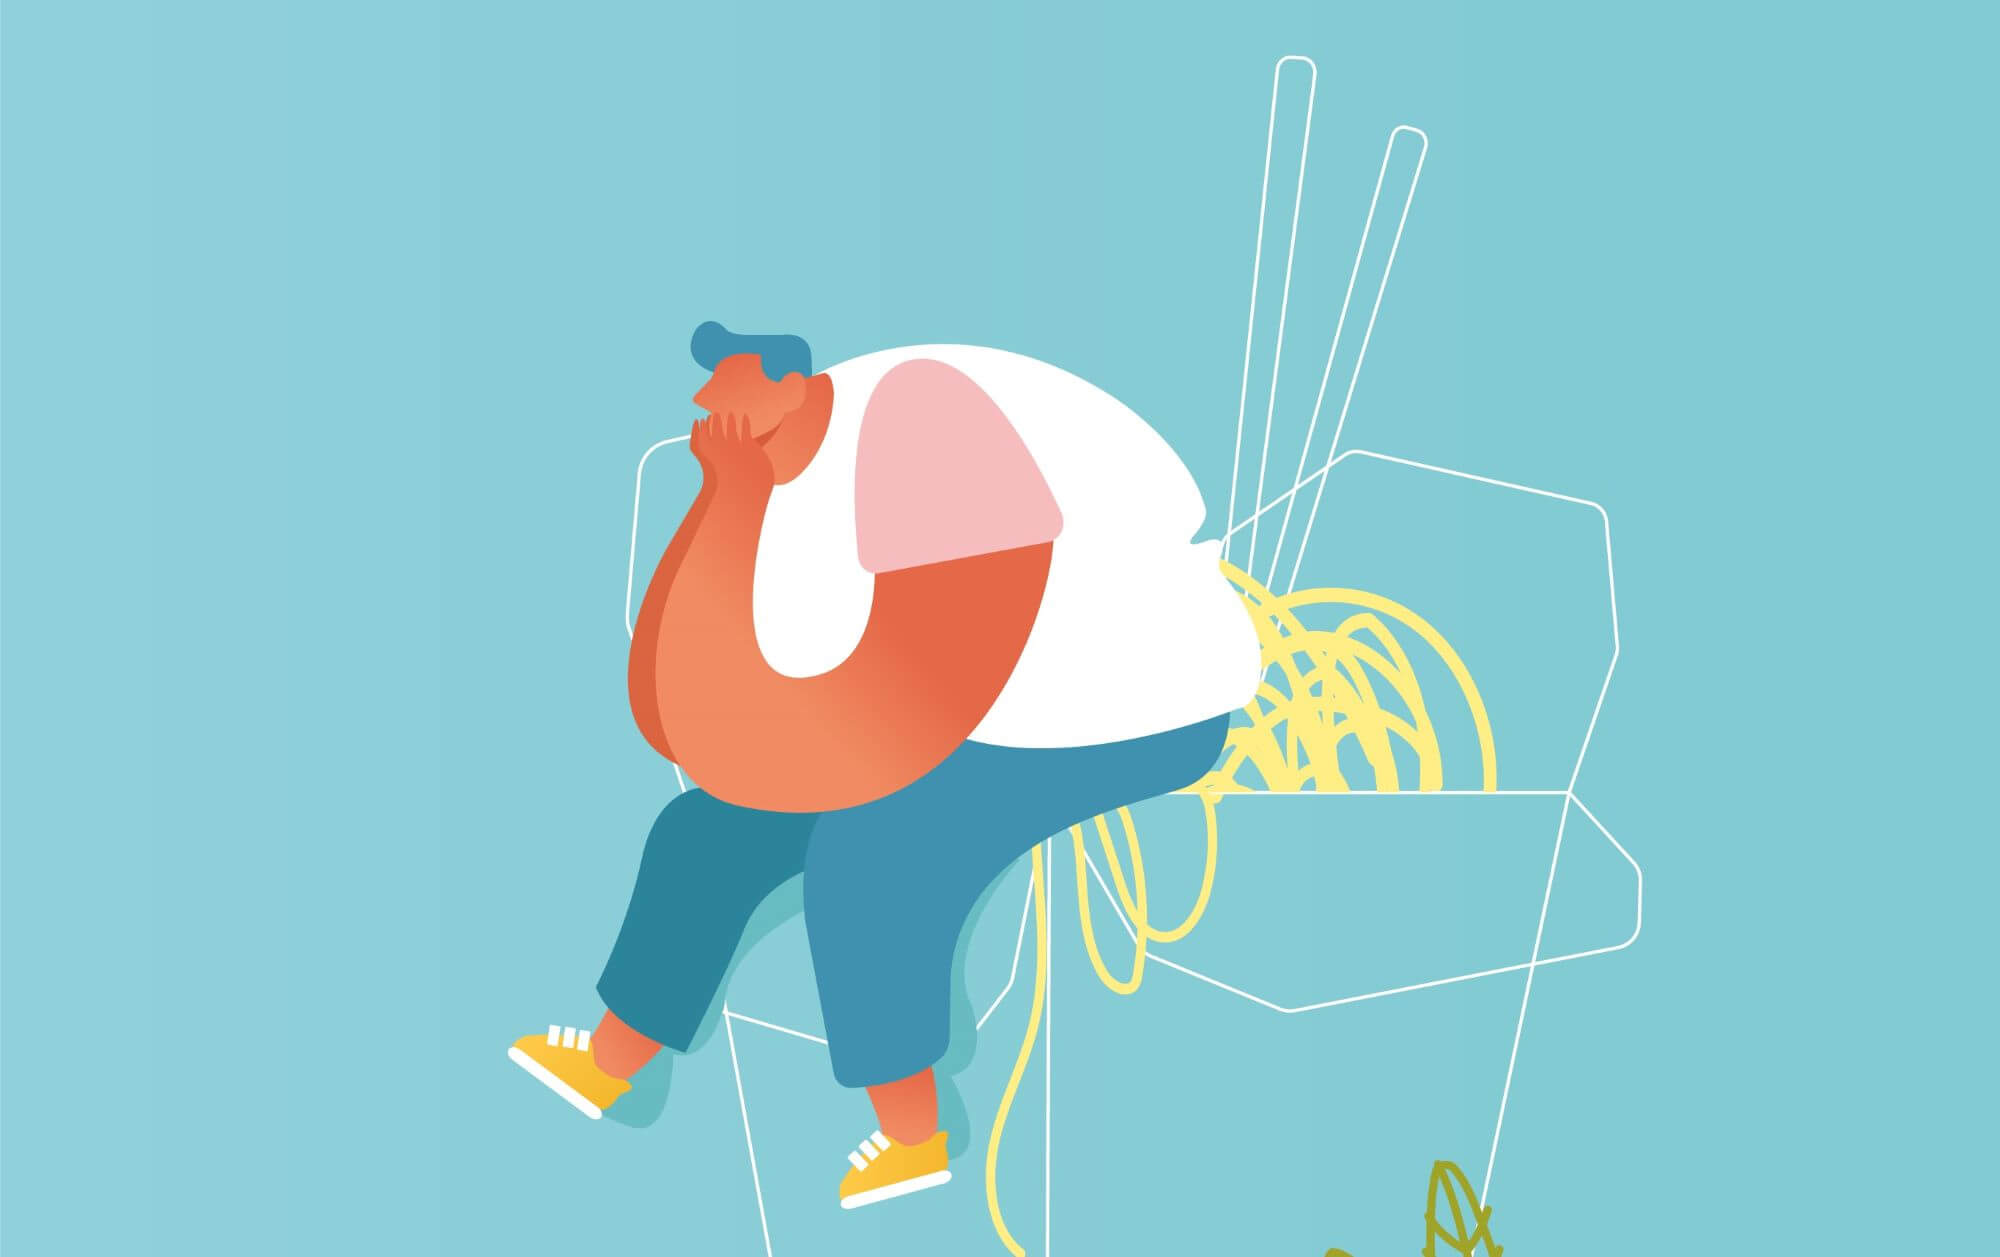 man sitting on junk-food and thinking